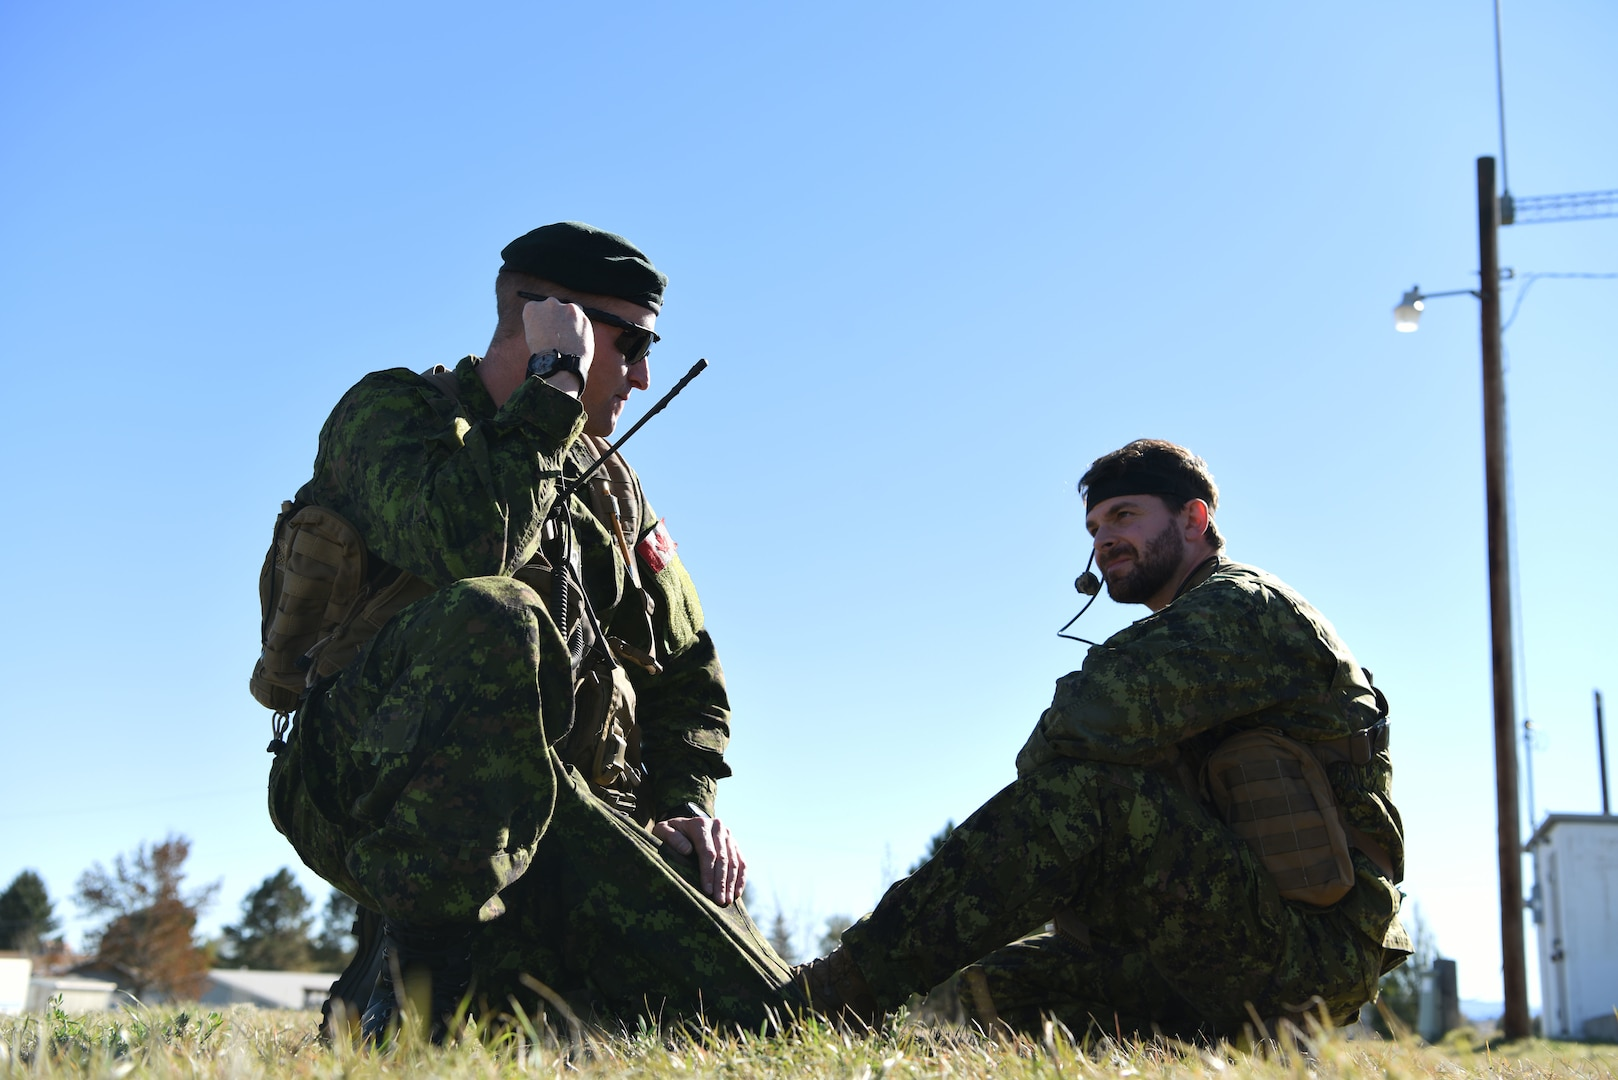 Capt. Chris Tymchuk, a joint tactical air controller troop commander assigned to the Royal Canadian Horse Artillery, 1st Regiment, relays coordinates to a B-1 while on the ground in Belle Fourche, S.D., Oct. 17, 2018. JTACs from the 1st RCHA assisted in Combat Raider 19-1, an exercise that helped them become familiar with the B-1 and its capabilities. (U.S. Air Force photo by Airman 1st Class Thomas Karol)